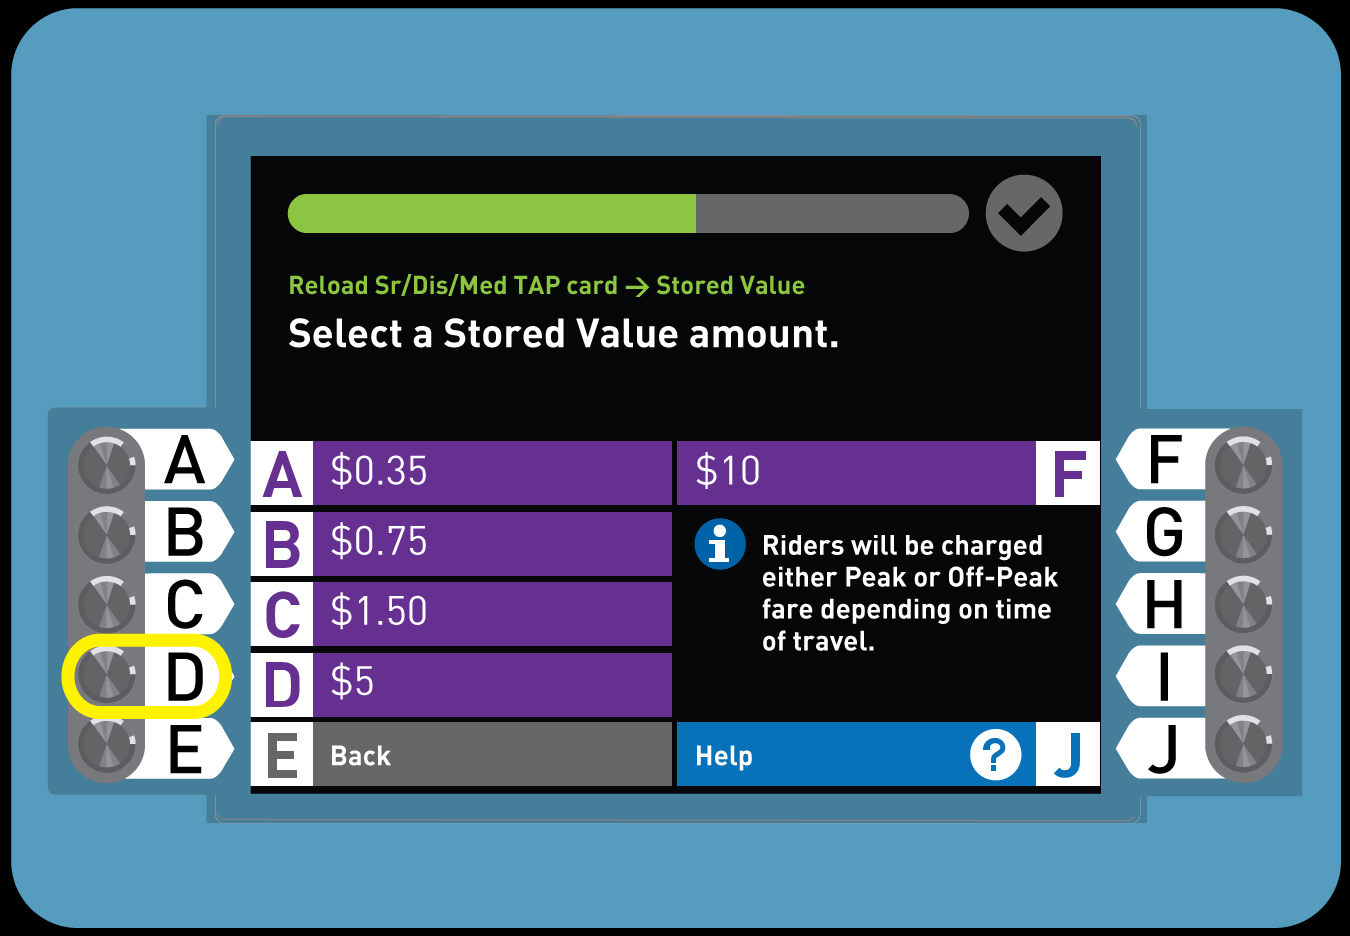 5. Buy a Senior TAP card with Stored Value